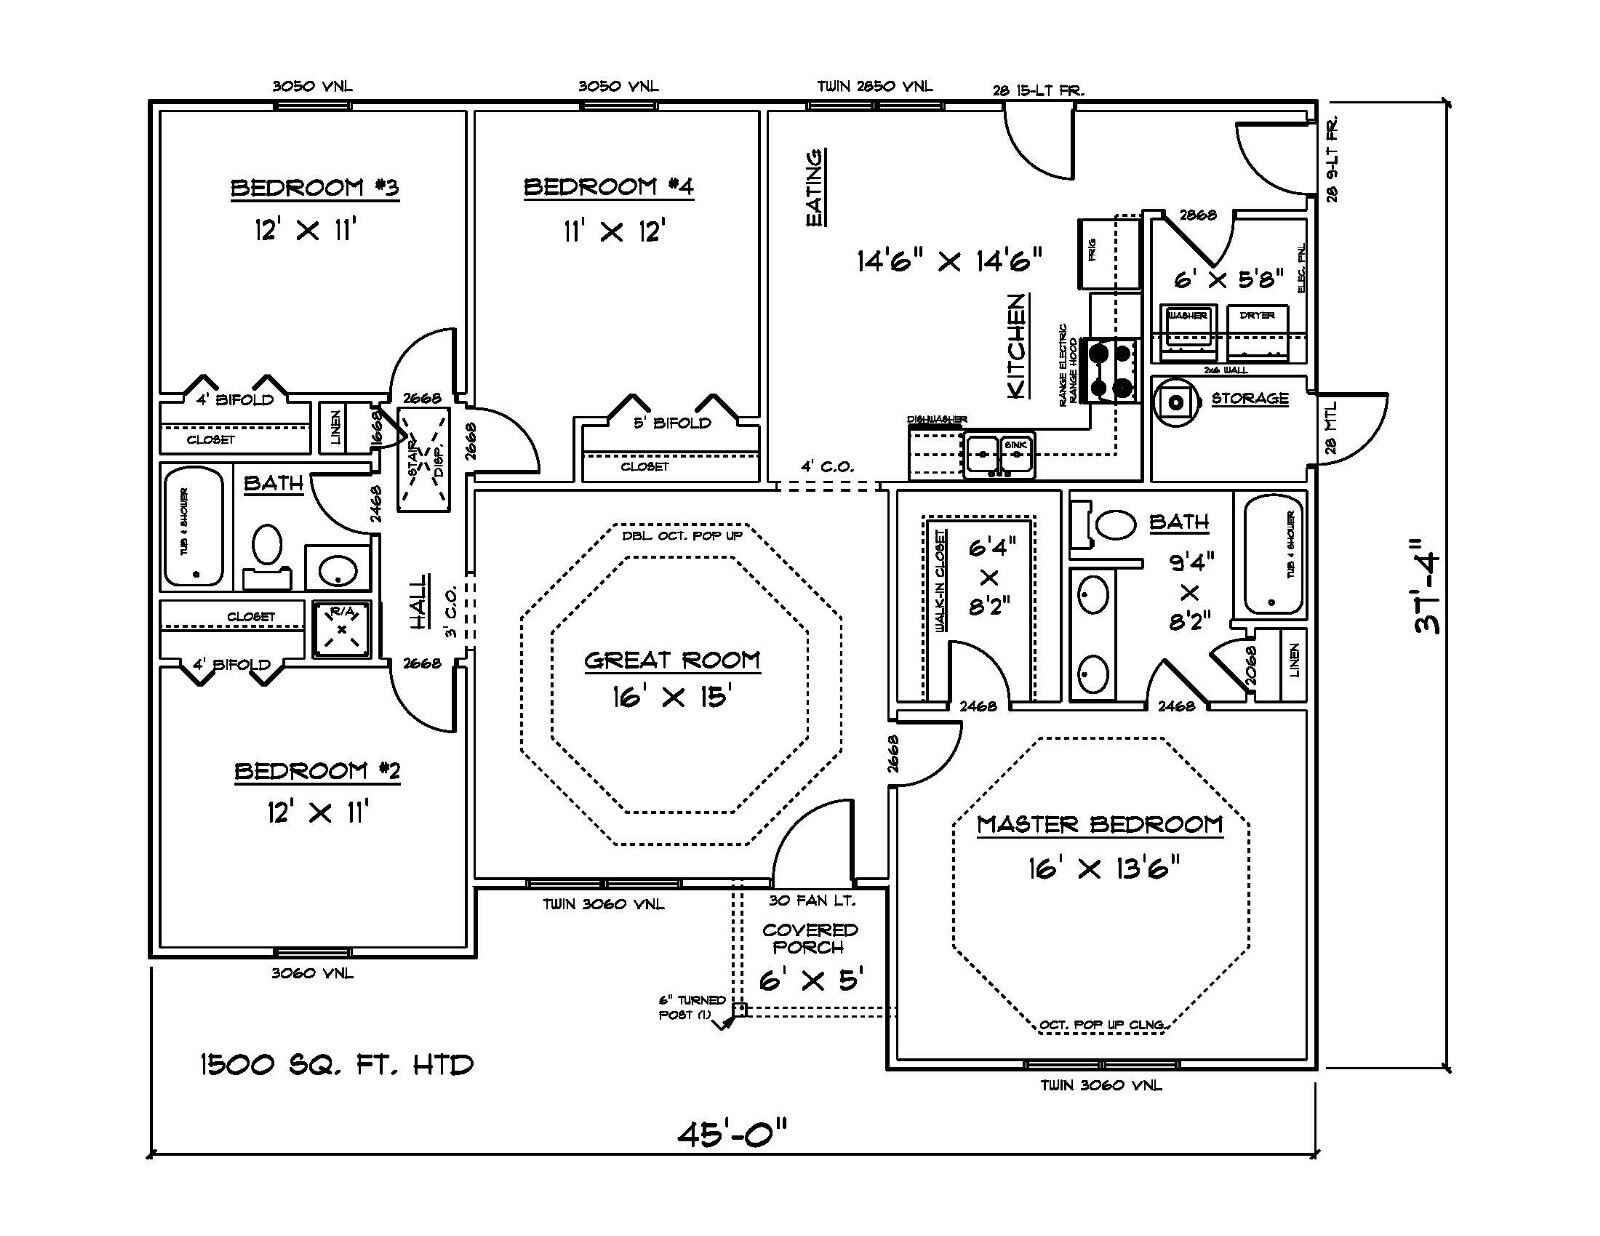 Inspiring 1500 sq ft home plans photo home plans for 1500 square foot house